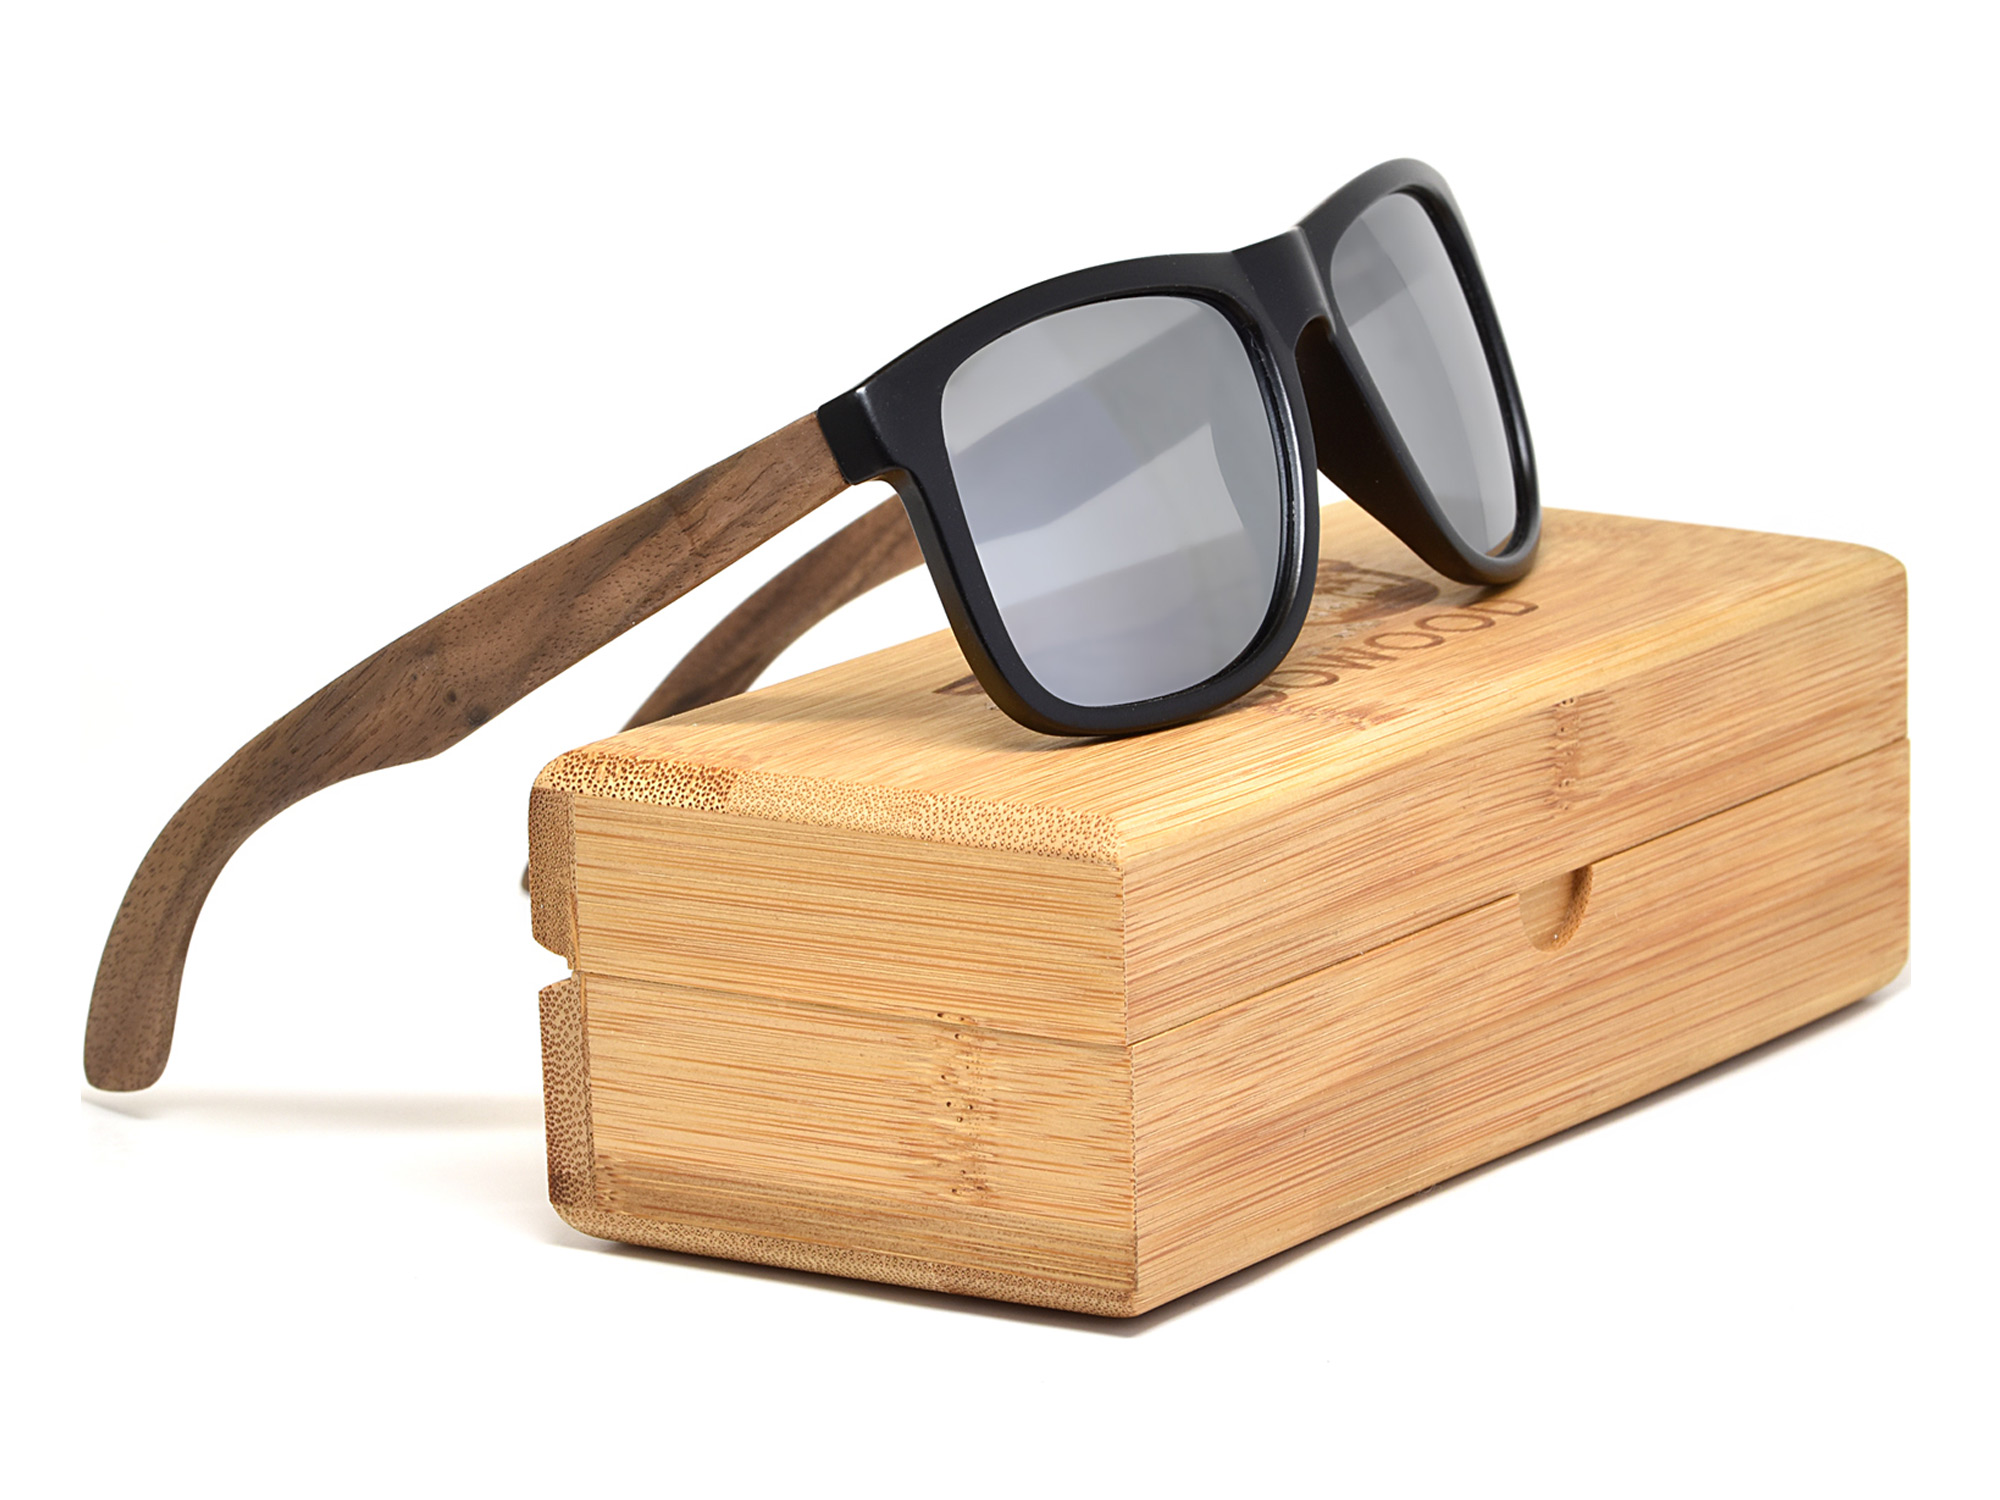 Square walnut wood sunglasses with silver mirrored polarized lenses set